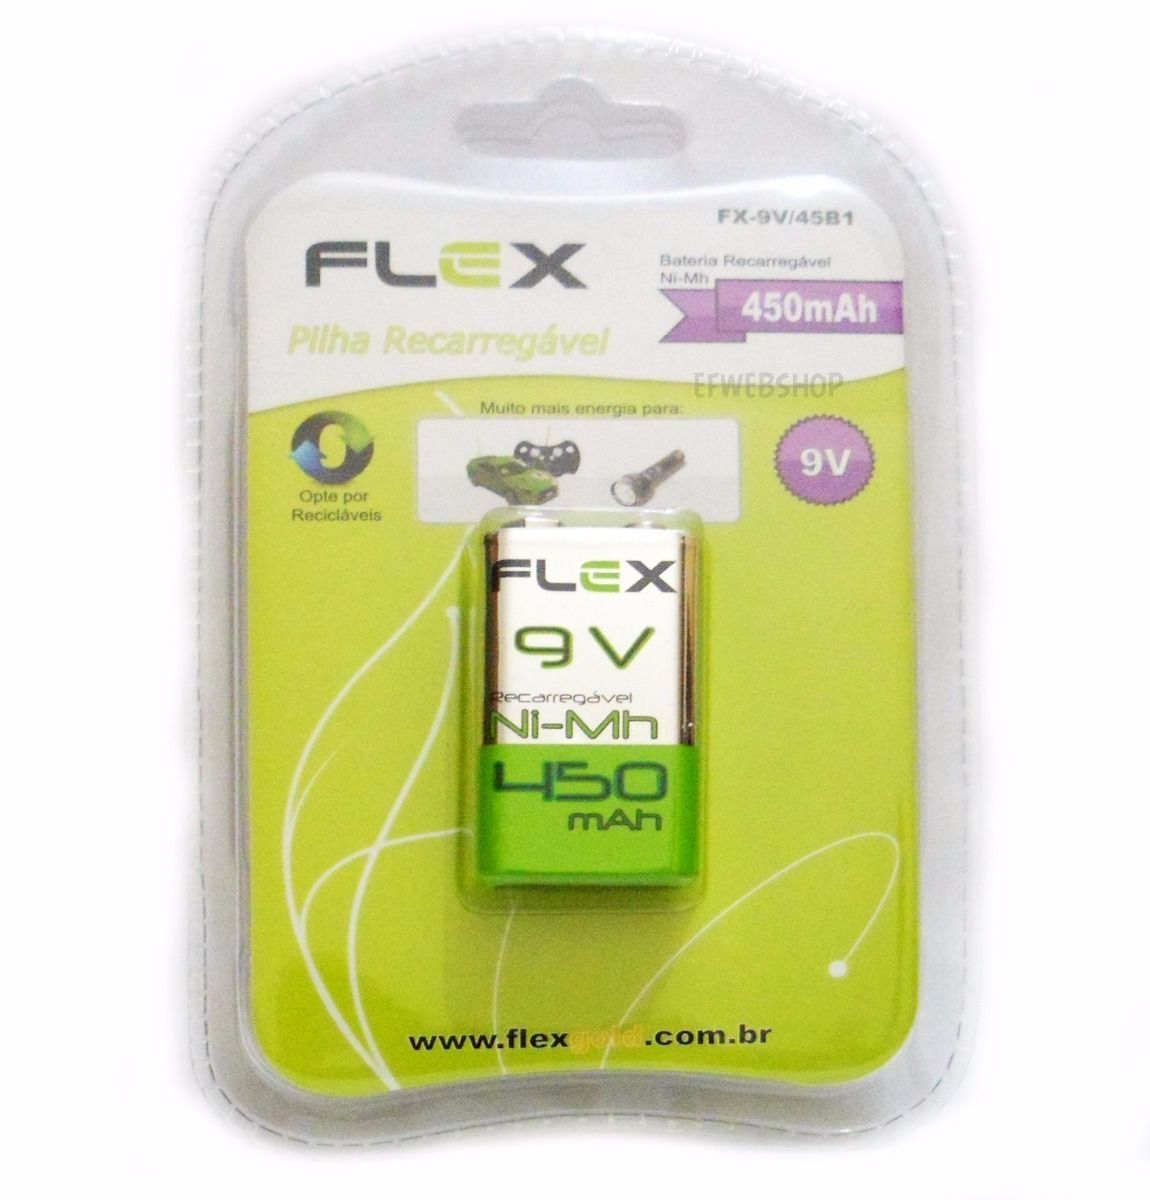 Kit 3 Bateria Recarregavel 9v 450Mah Flex - Original (Blister)